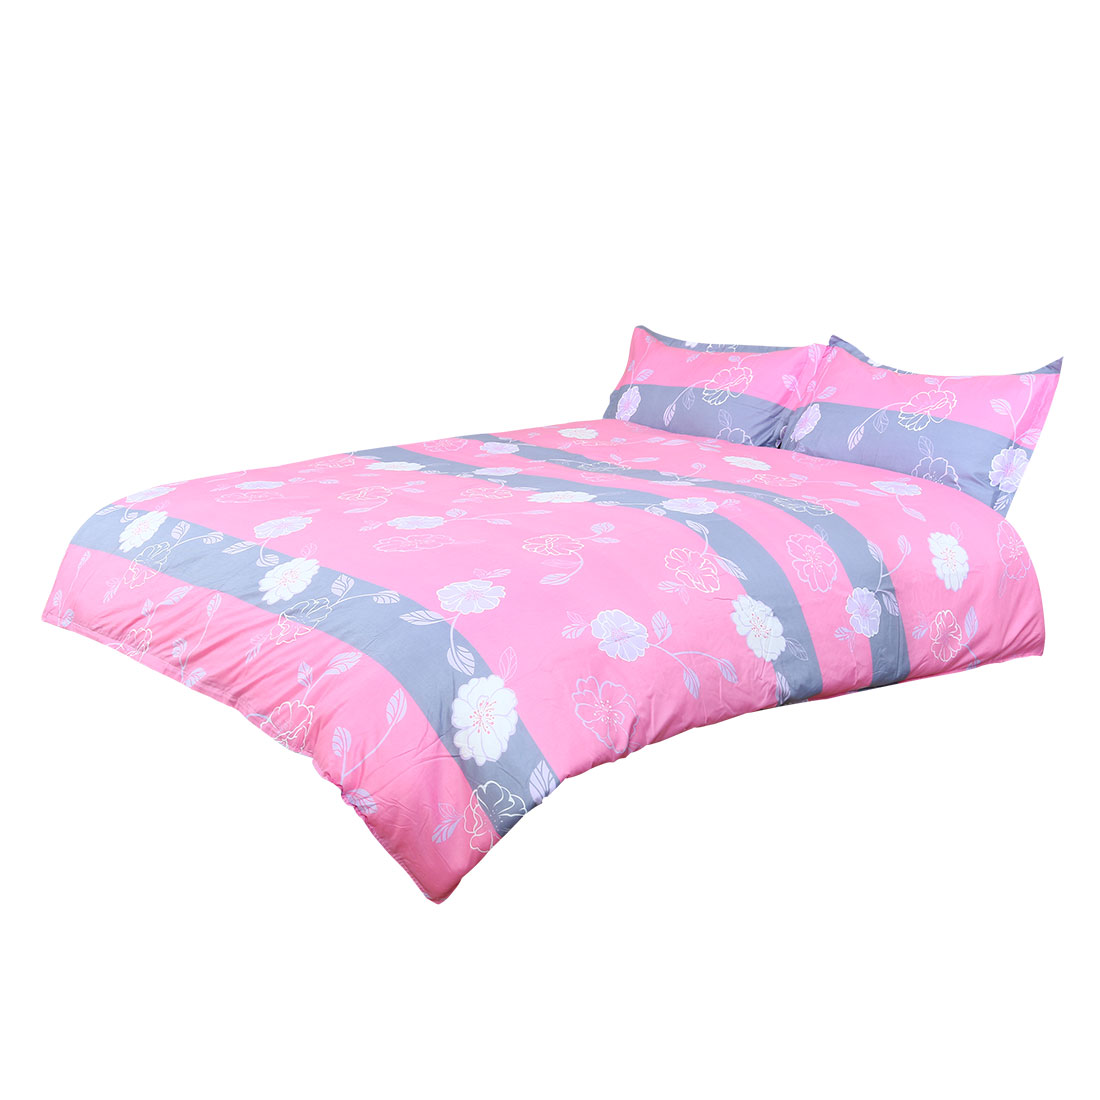 Flowers Pattern Duvet Cover Pillowcase Quilt Cover Bedding Set Pink King Size